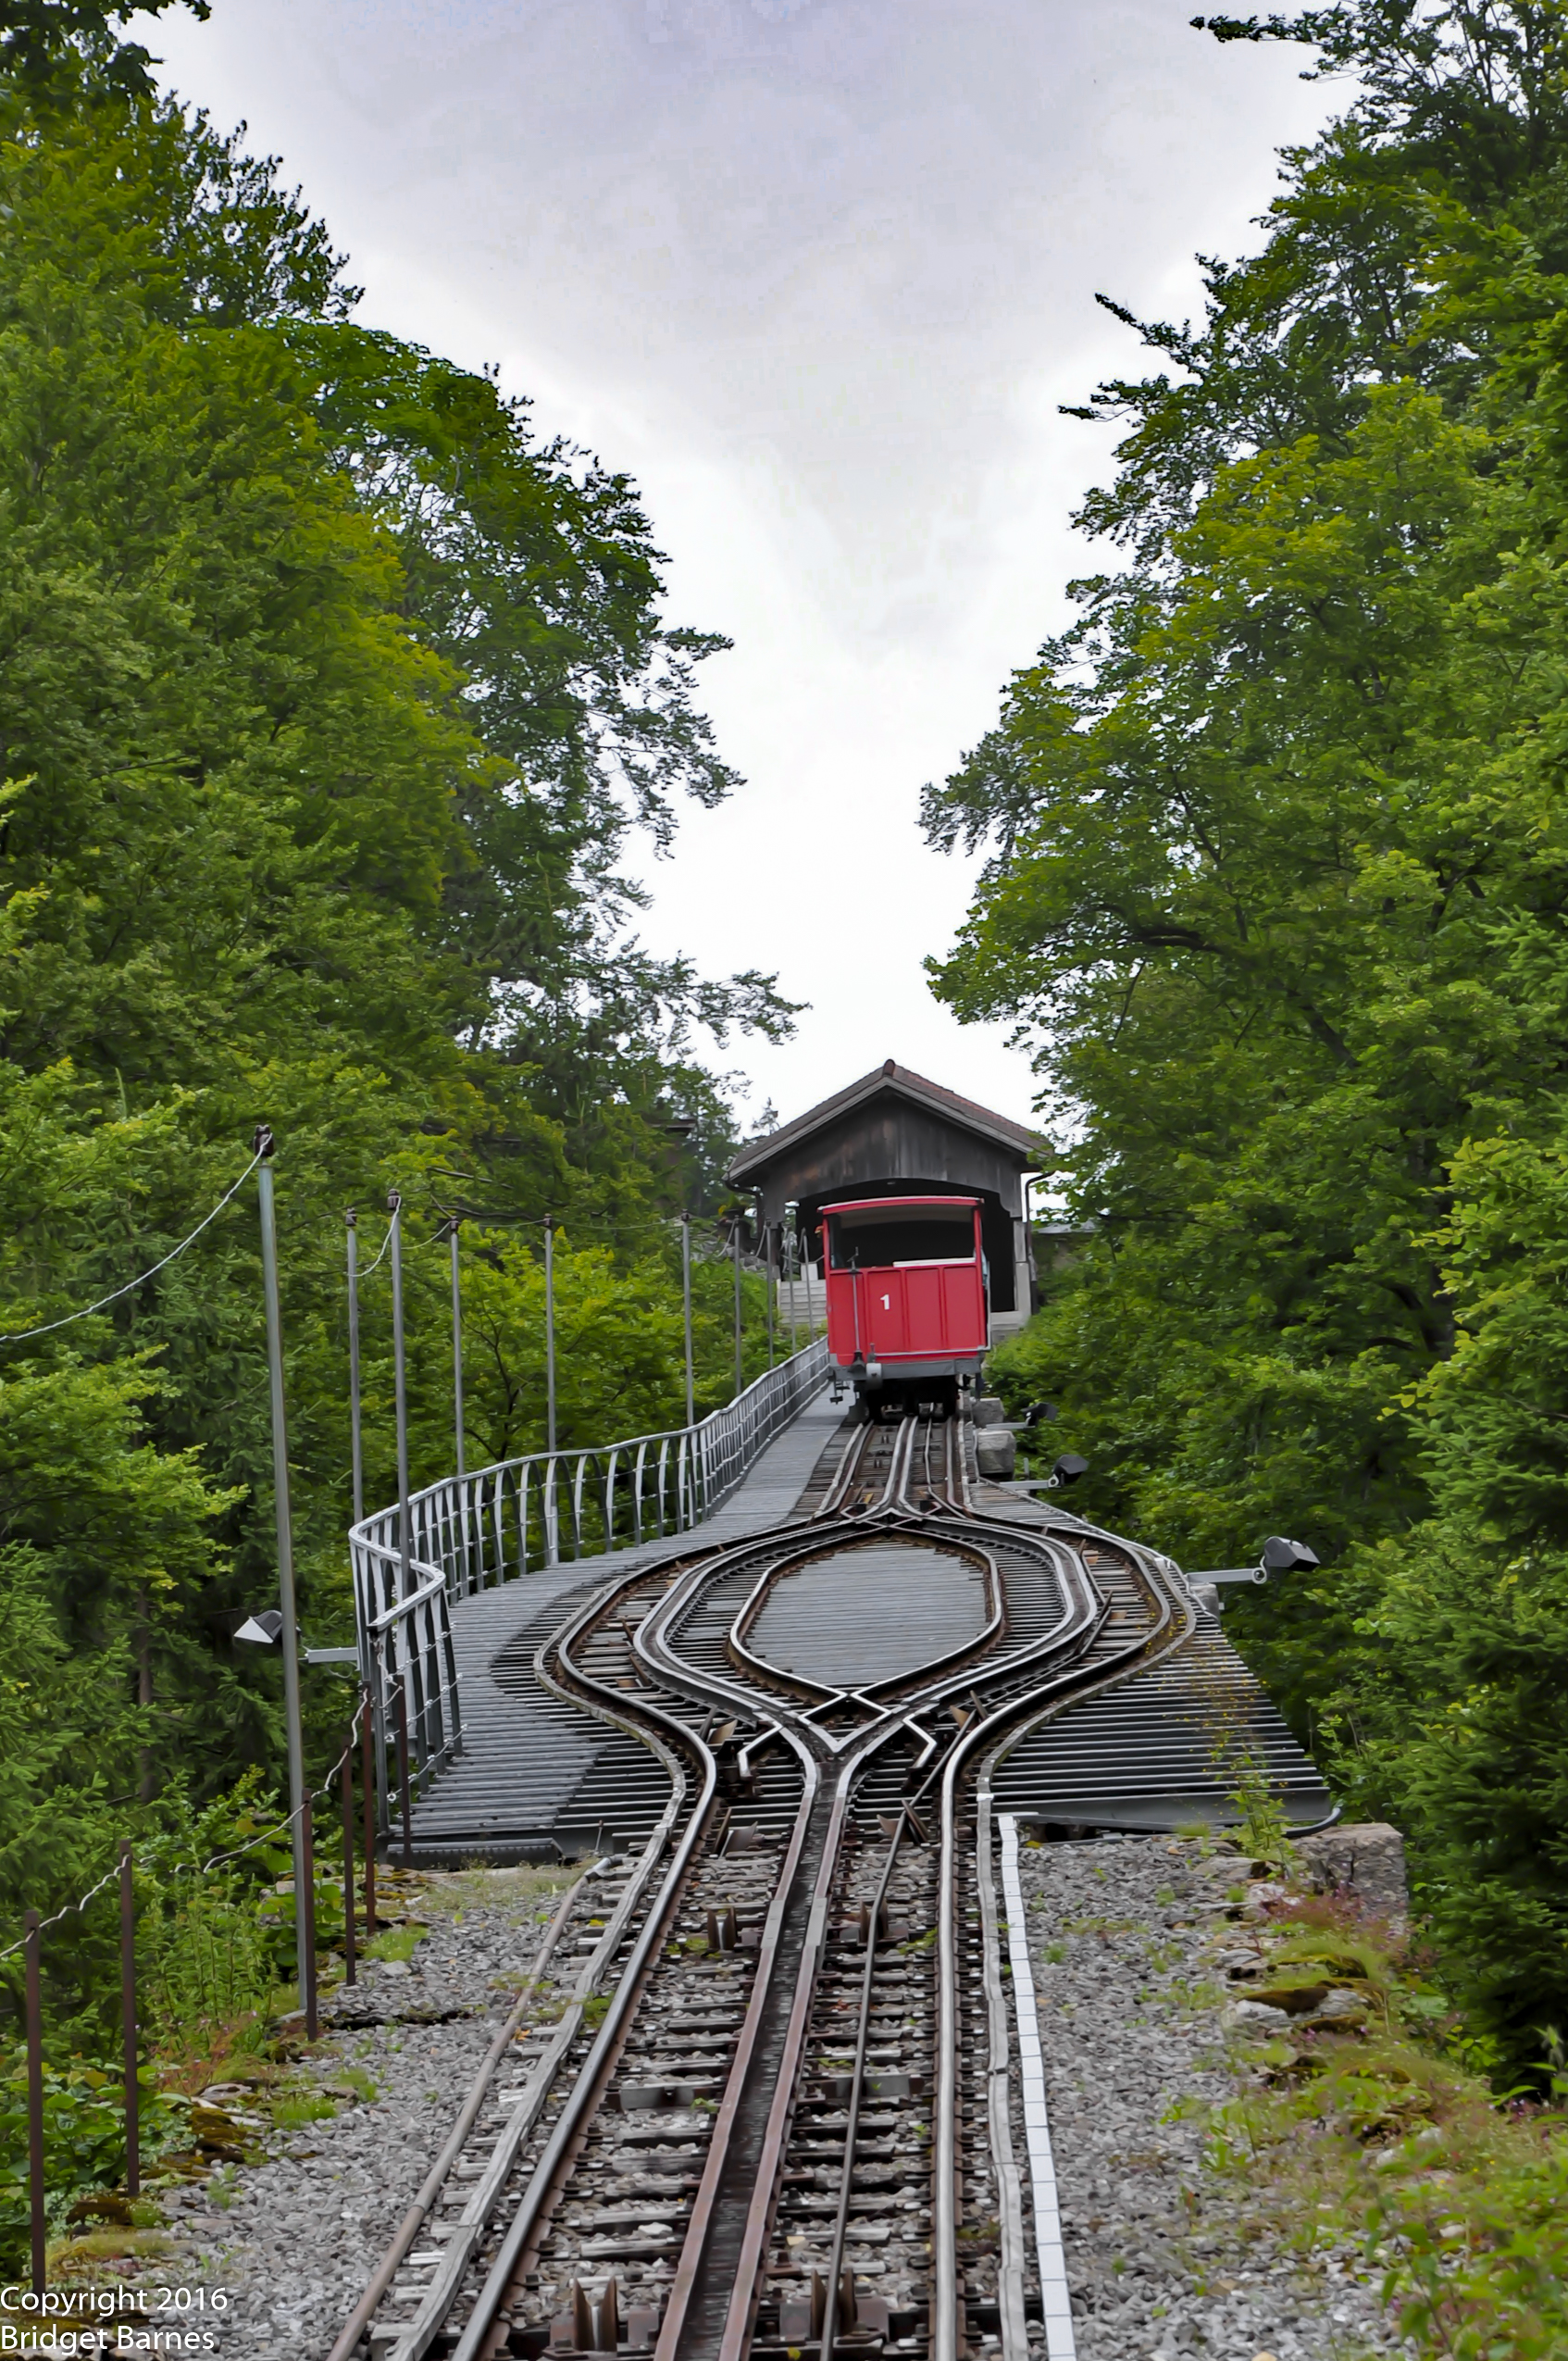 The funicular to the Grandhotel Giessbach and Giessbach Falls